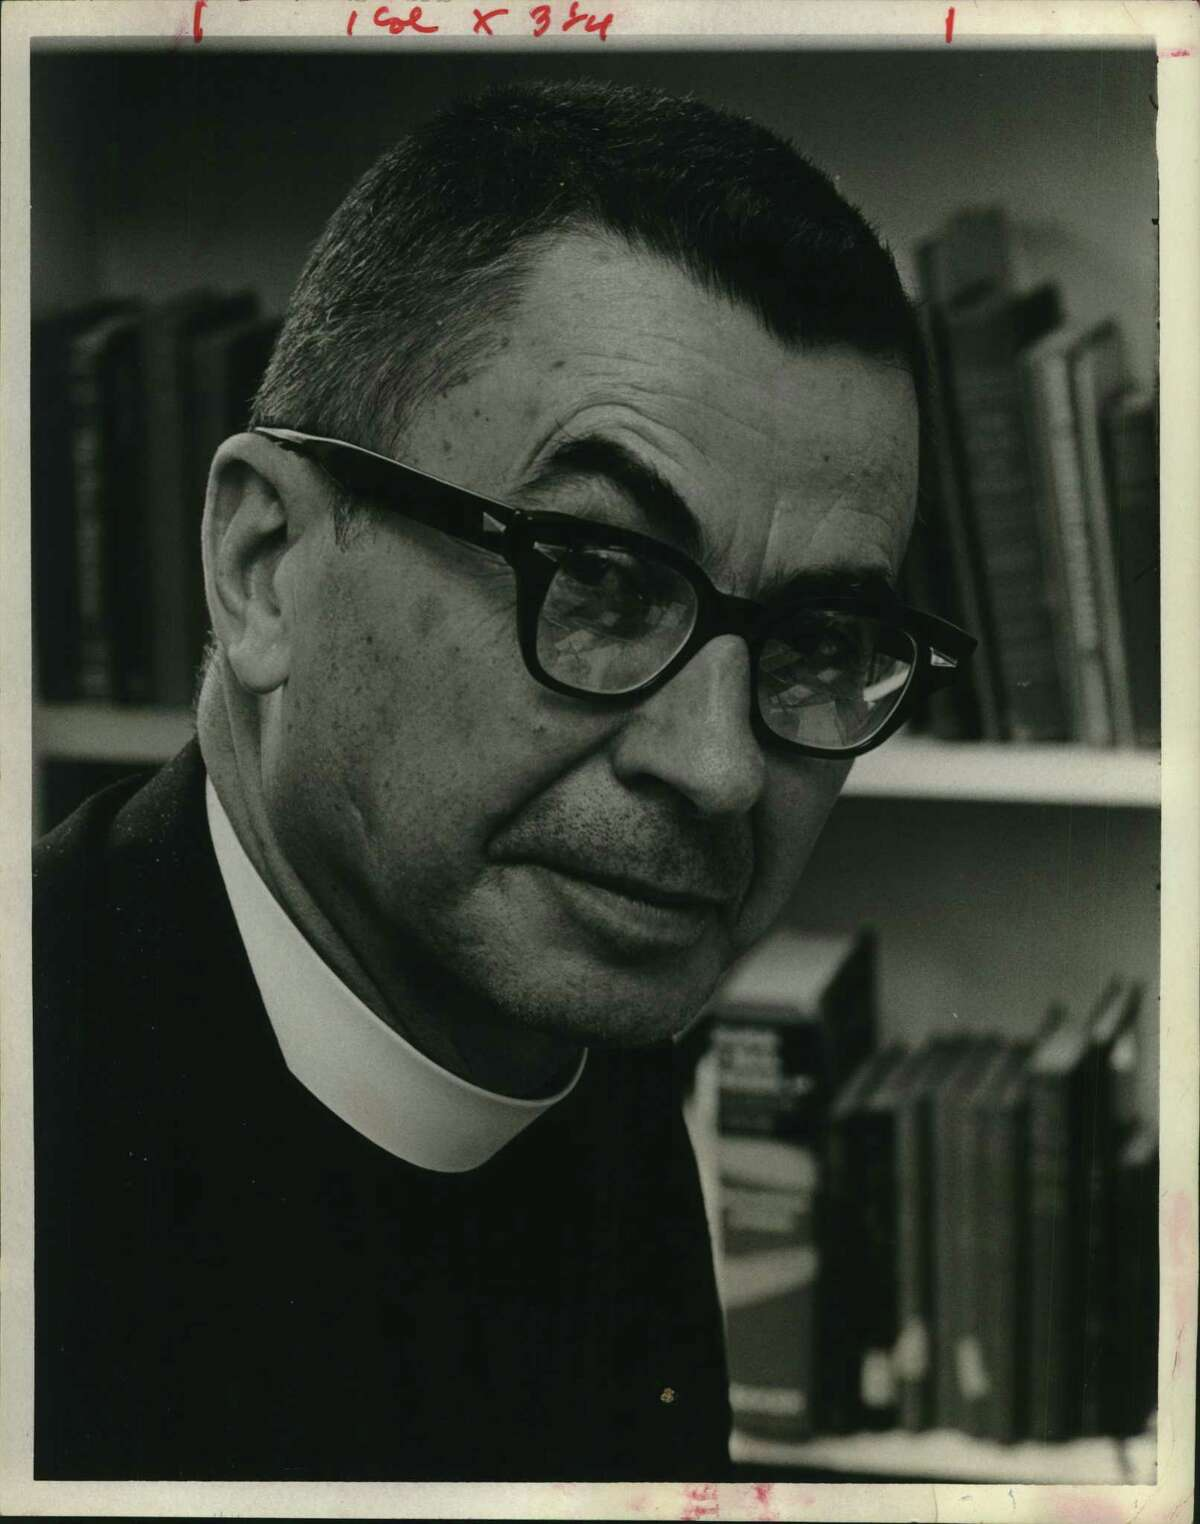 St. Thomas' Episcopal School alumni are calling for a deeper reckoning with the segregationist beliefs of founding rector Rev. T. Robert Ingram, pictured, who helped start the Meyerland church in the 1950s. St. Thomas' Episcopal administrators this month called Ingram's beliefs